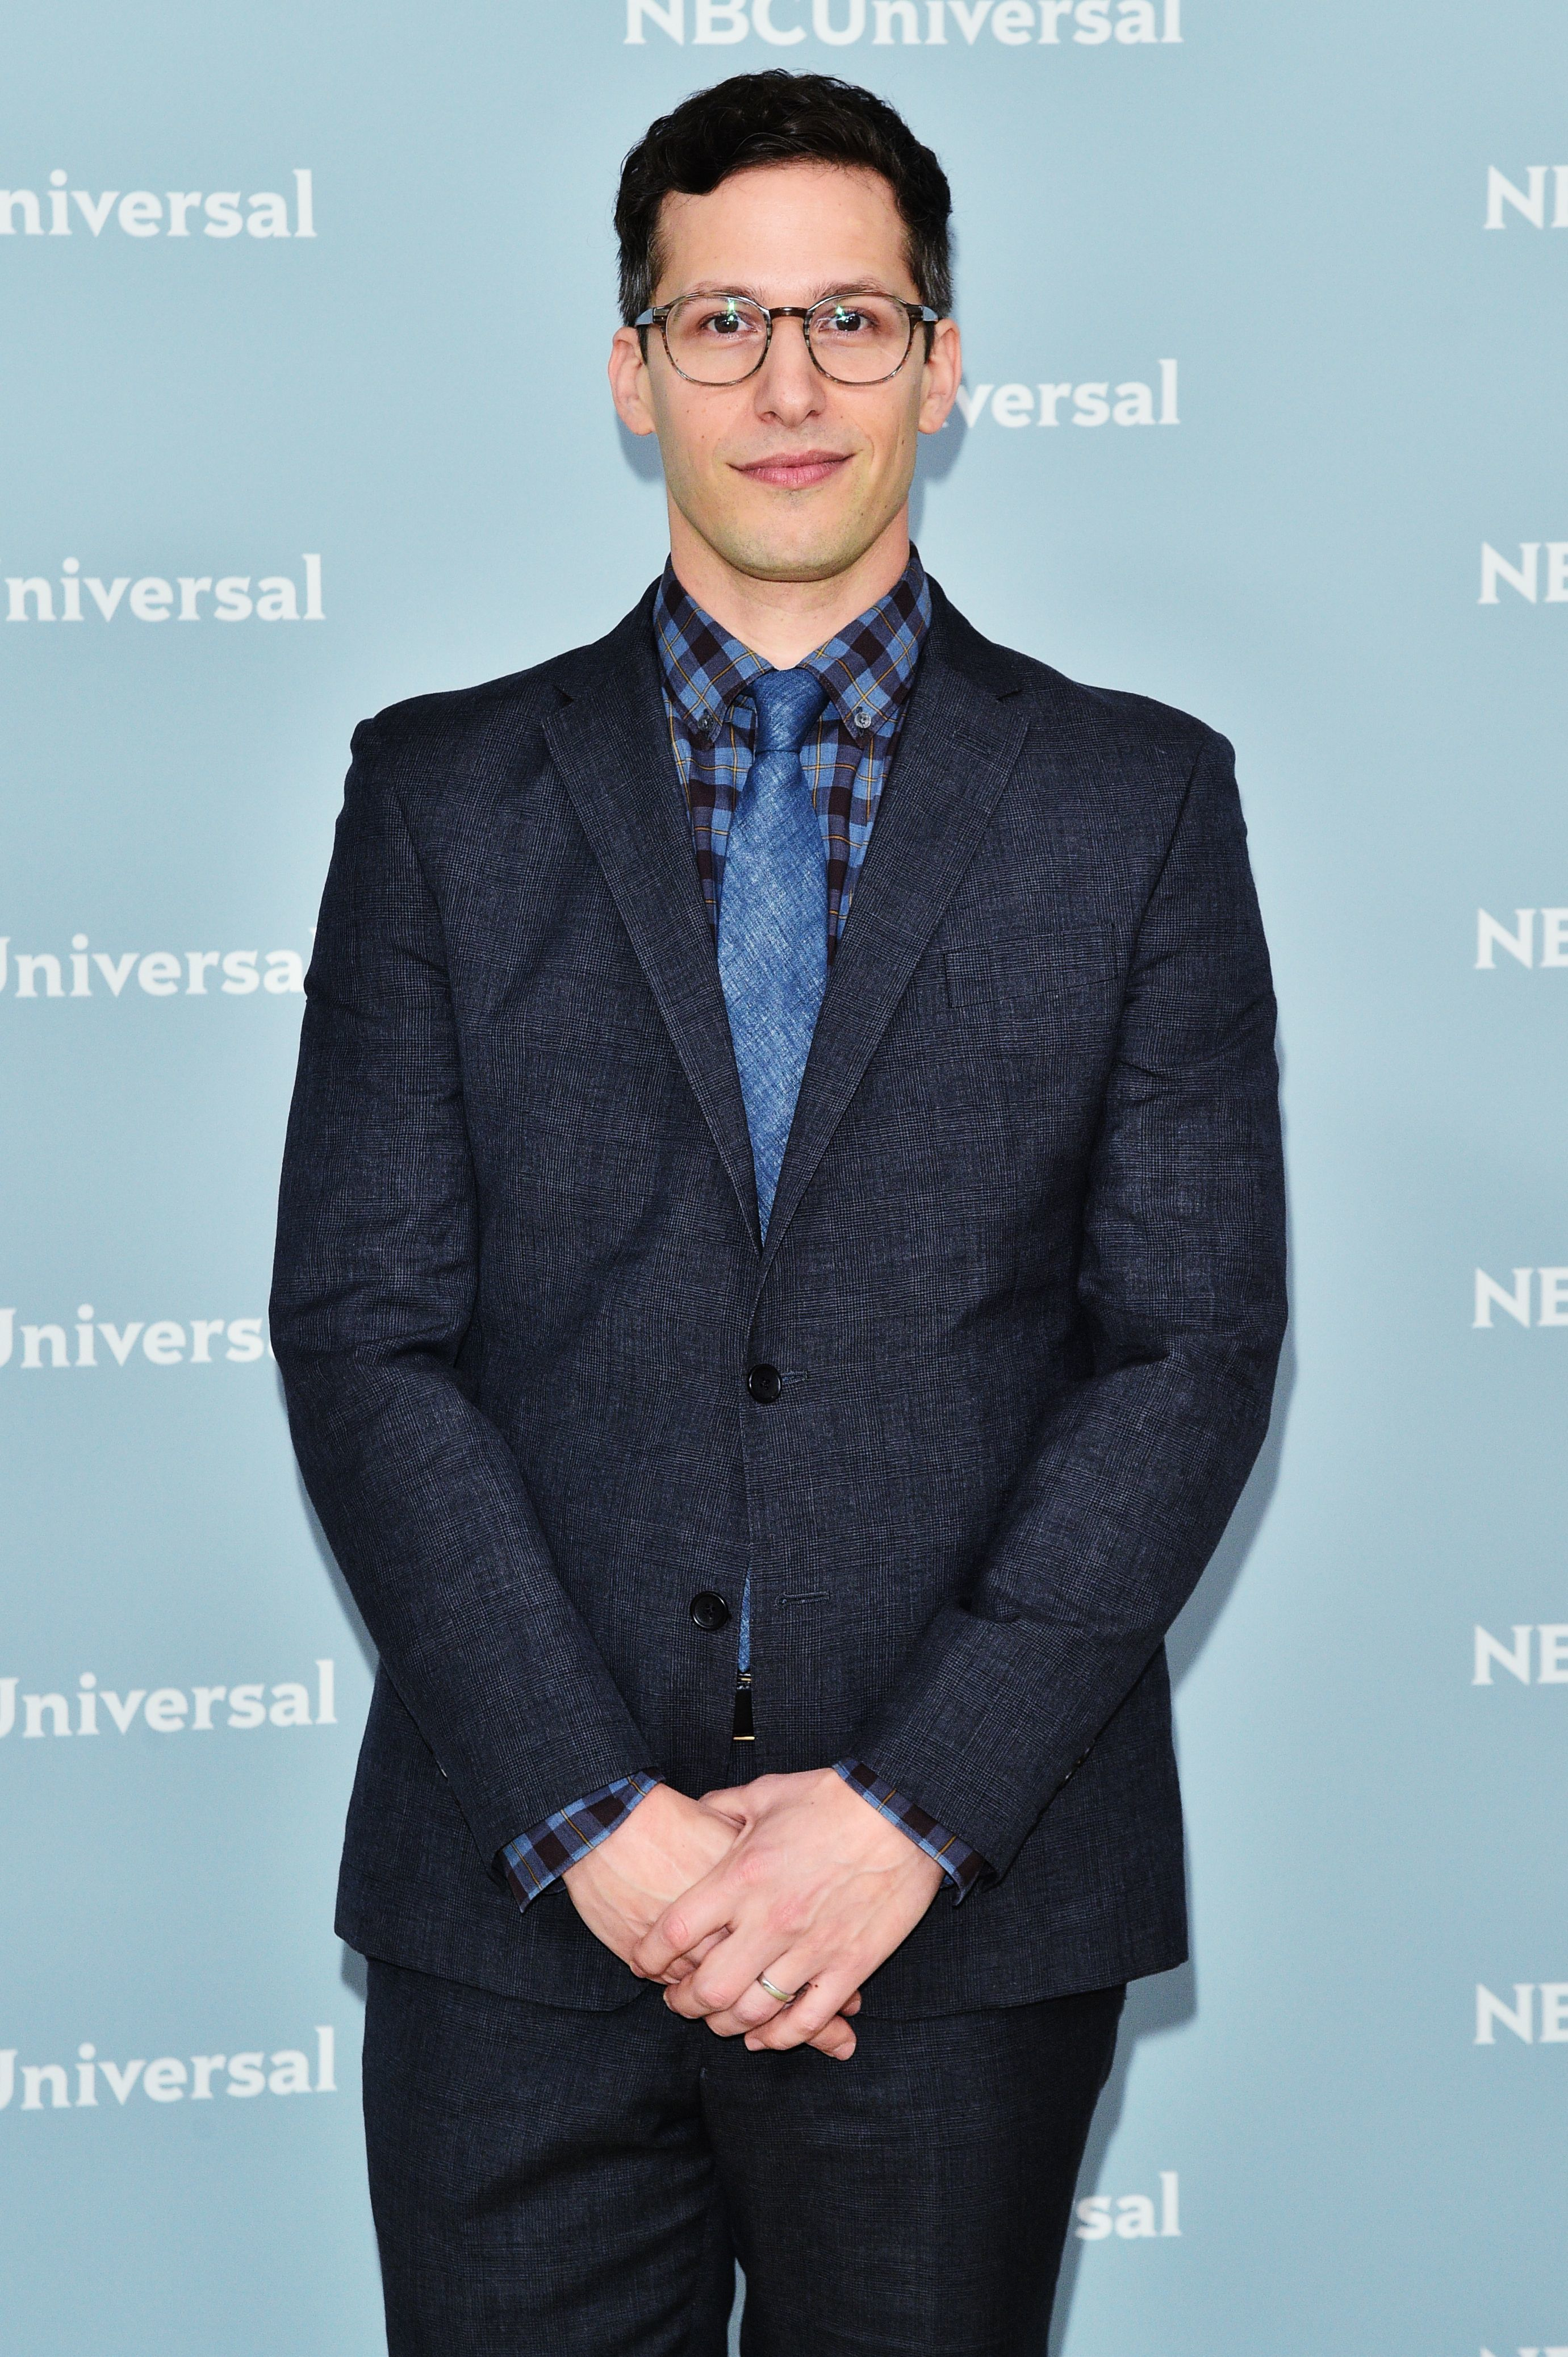 Andy Samberg attends the NBCUniversal Upfront Presentation in New York City on May 14, 2018.